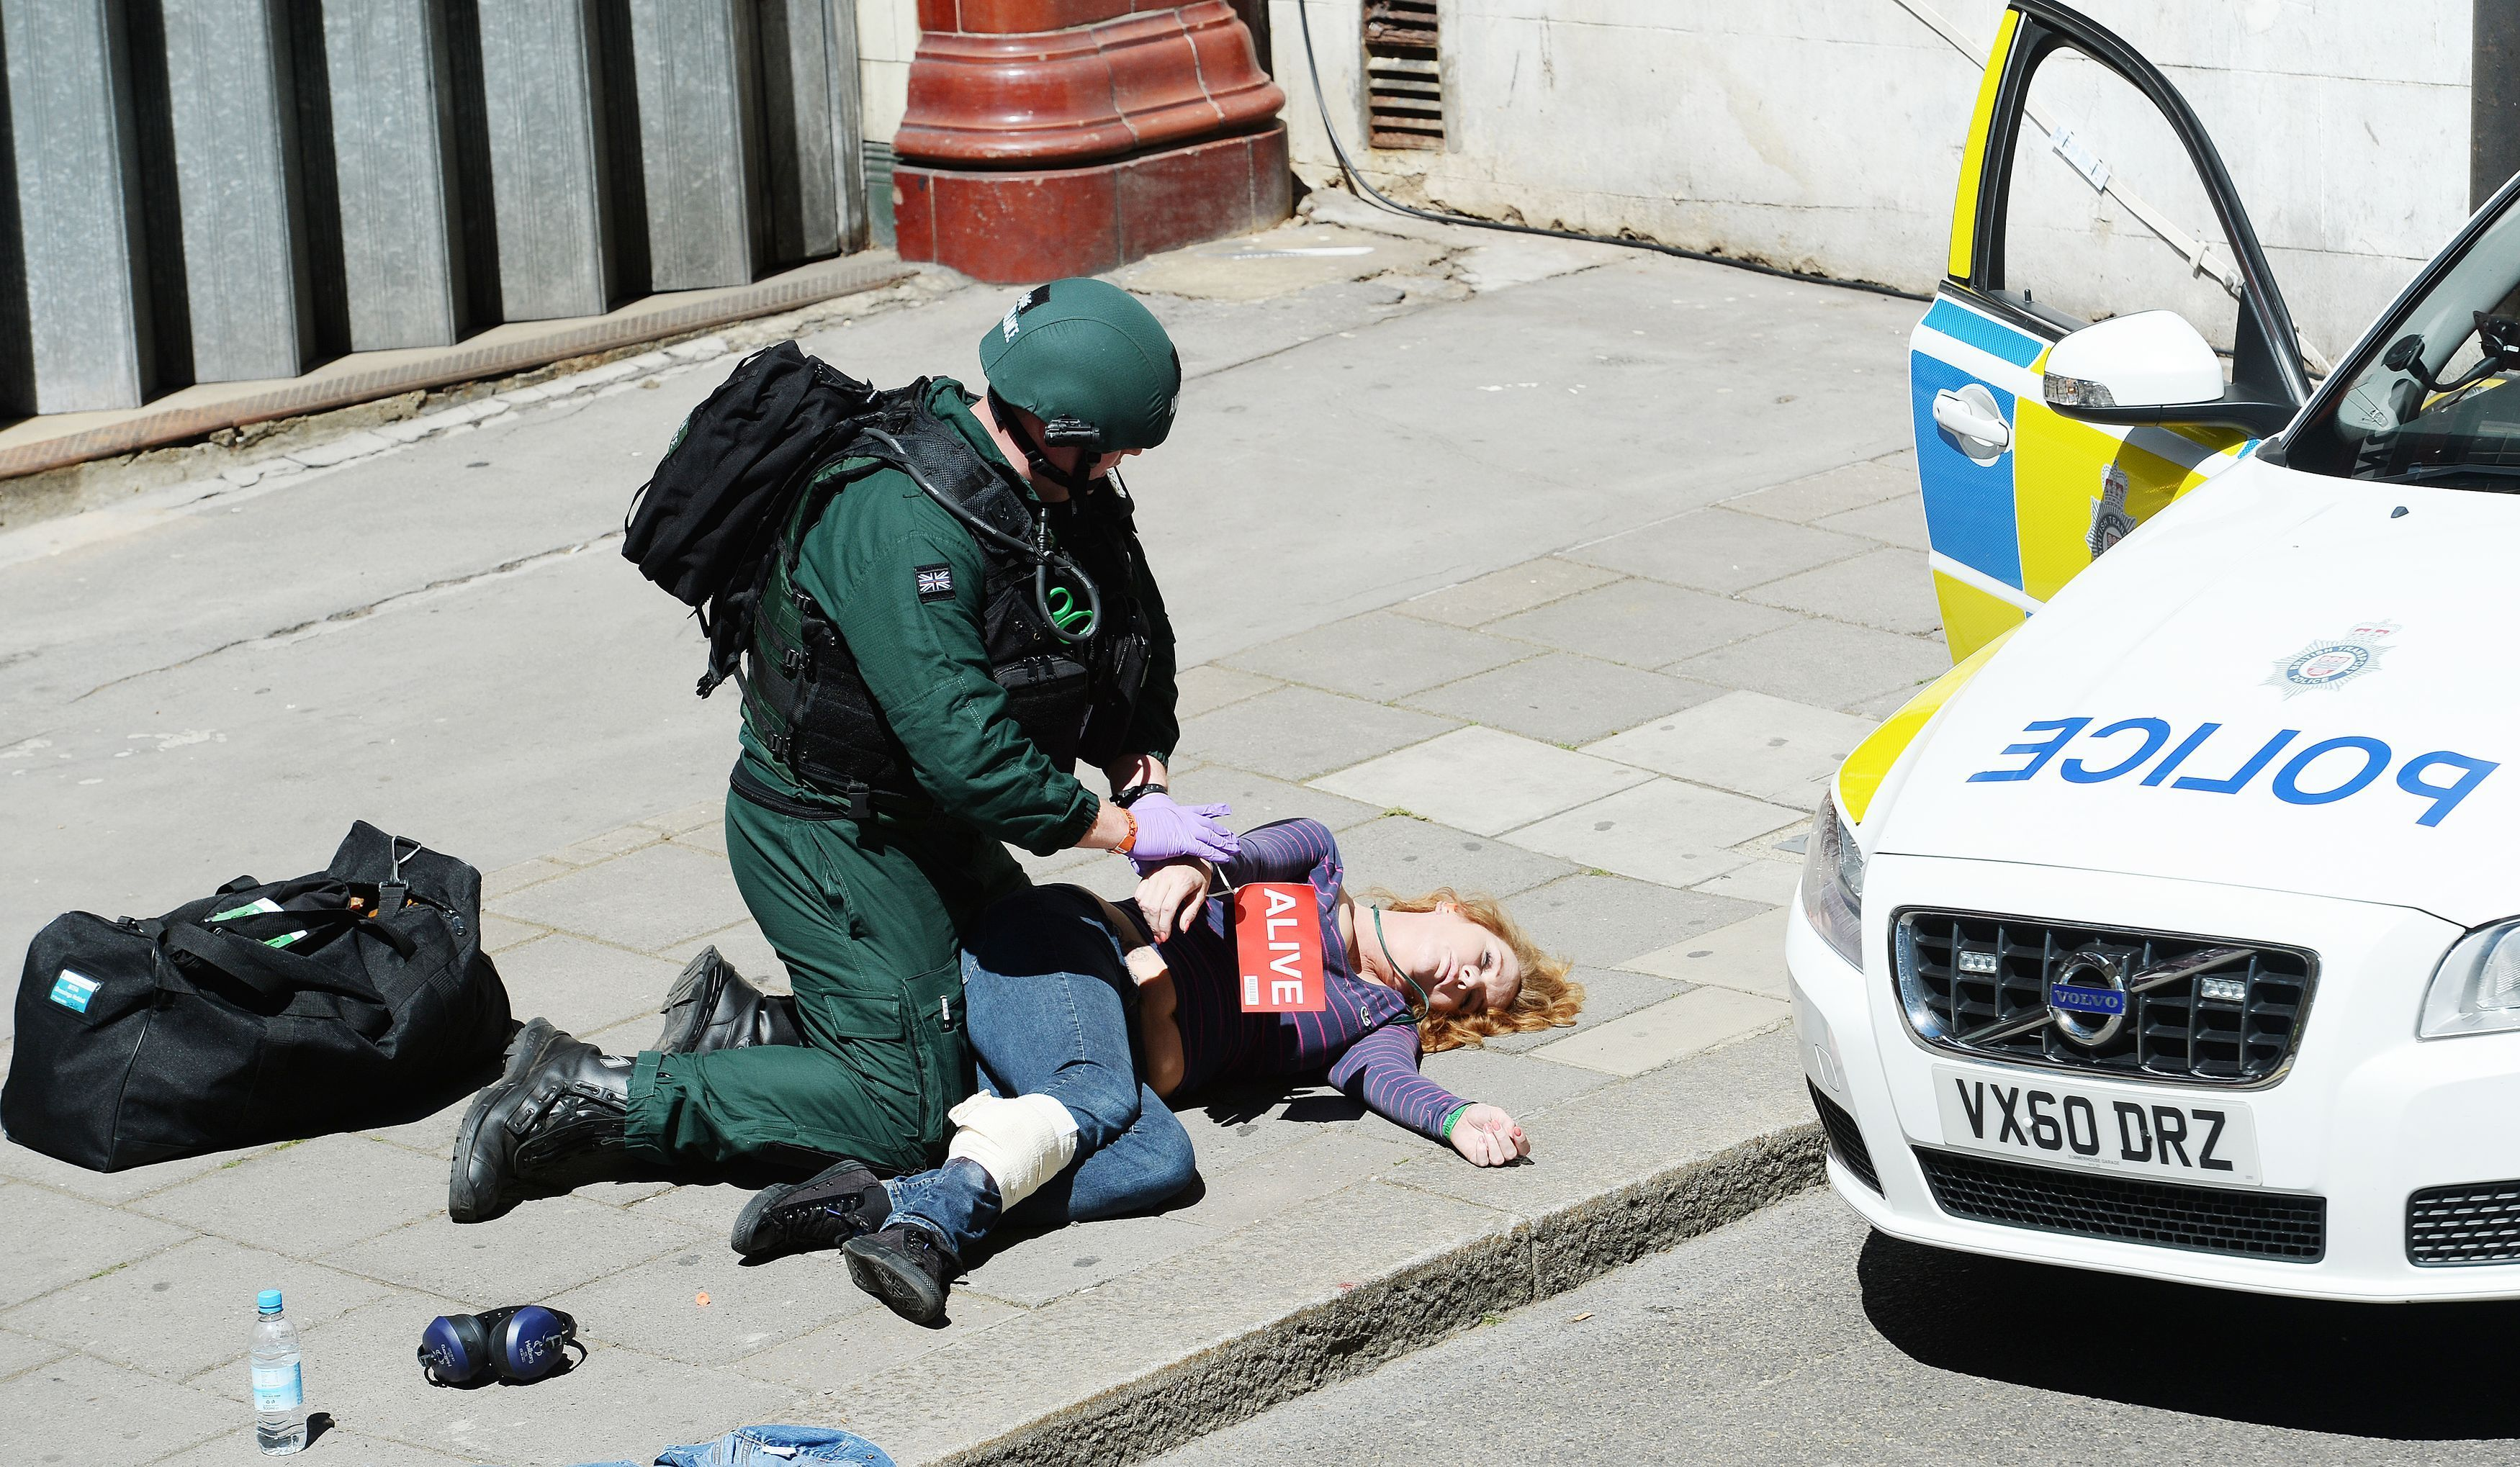 A major counter-terrorism exercise in London